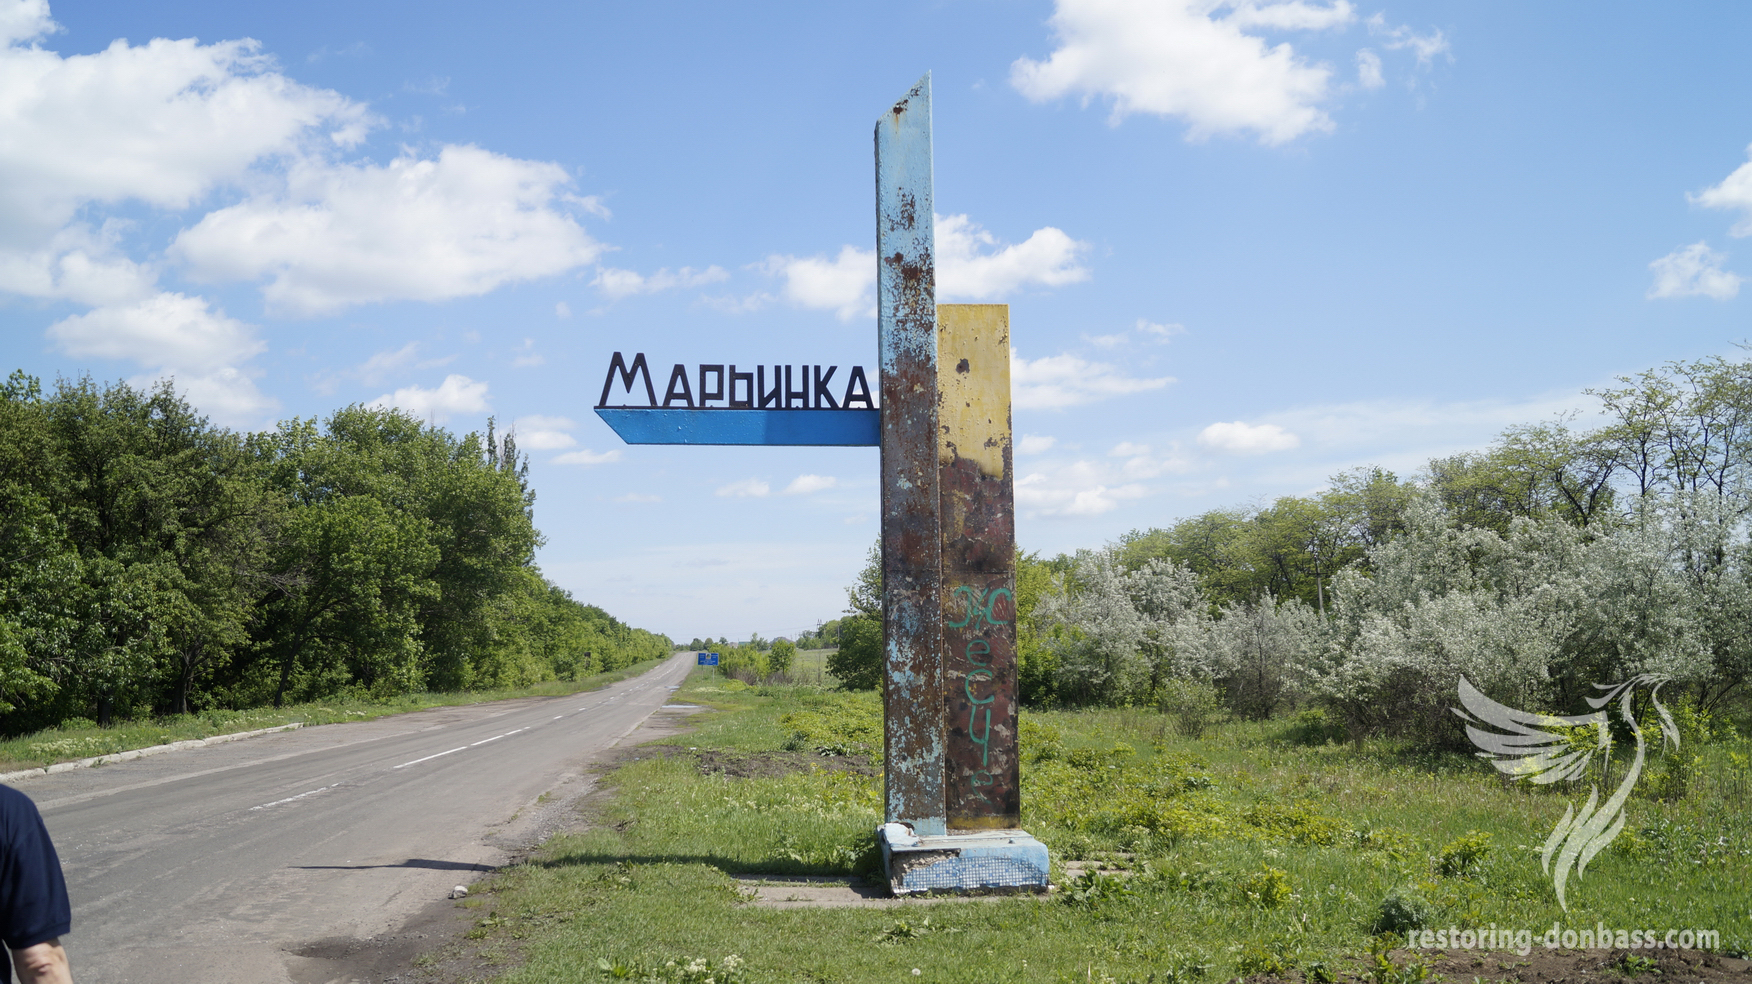 Marinka, Donetsk region. May, 2016